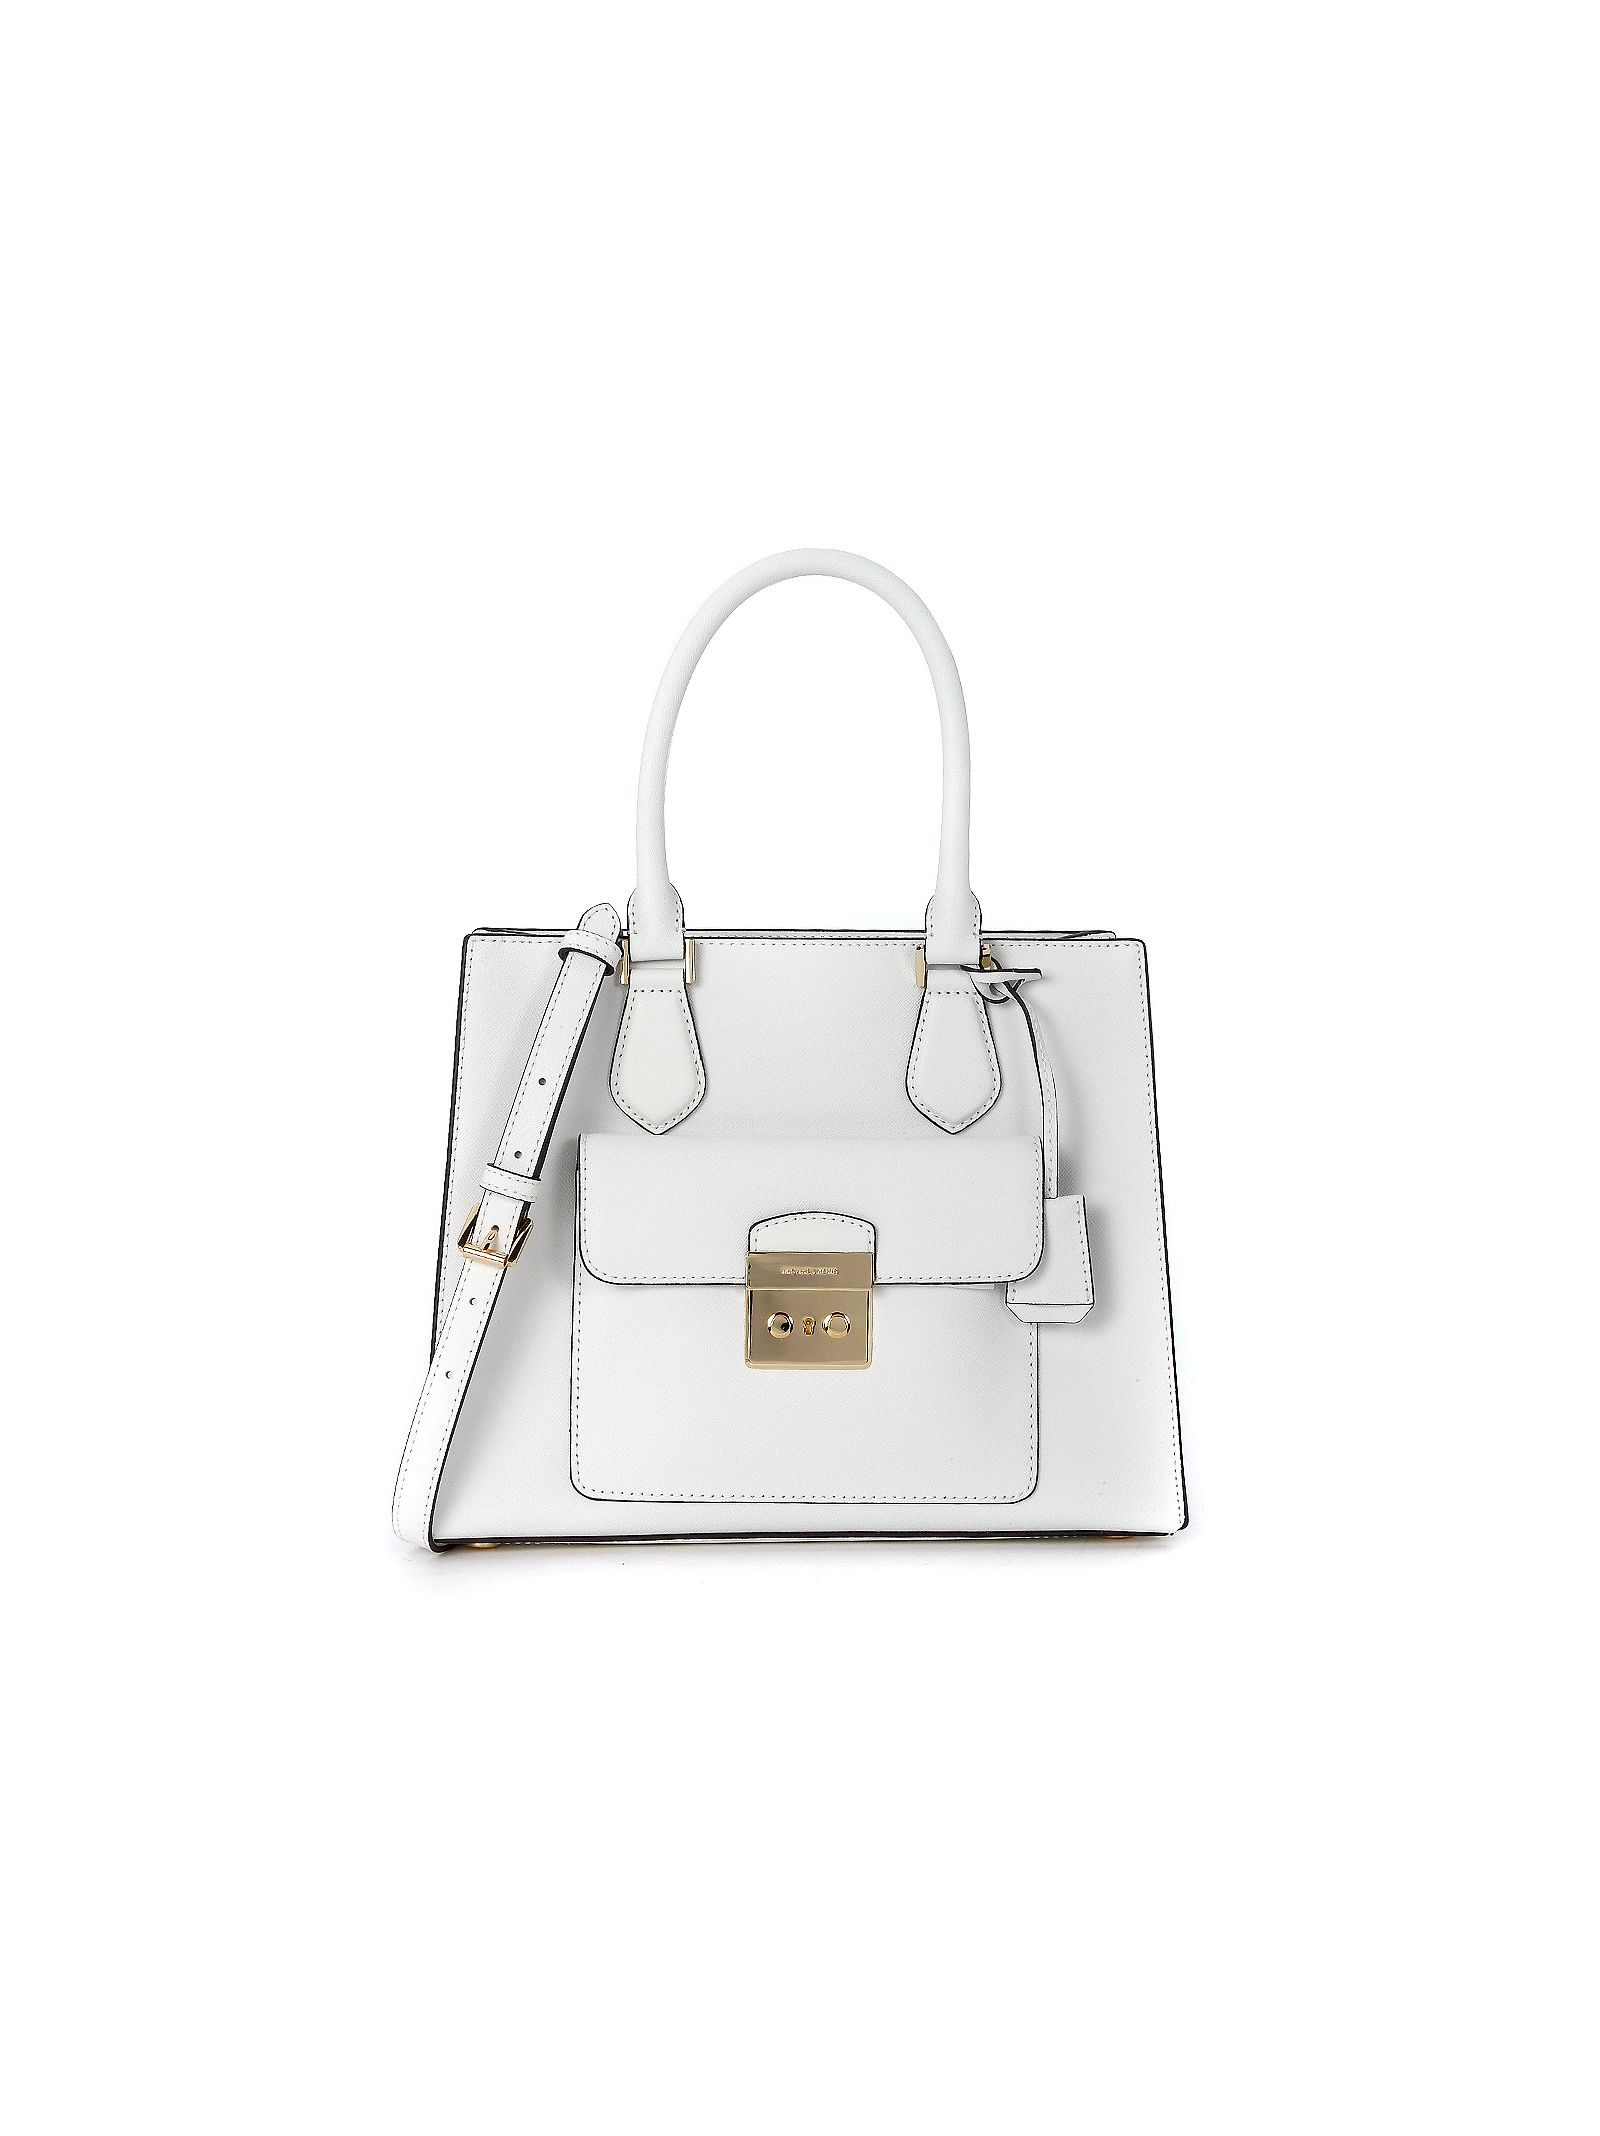 michael kors female  michael kors bridgette white leather handbag